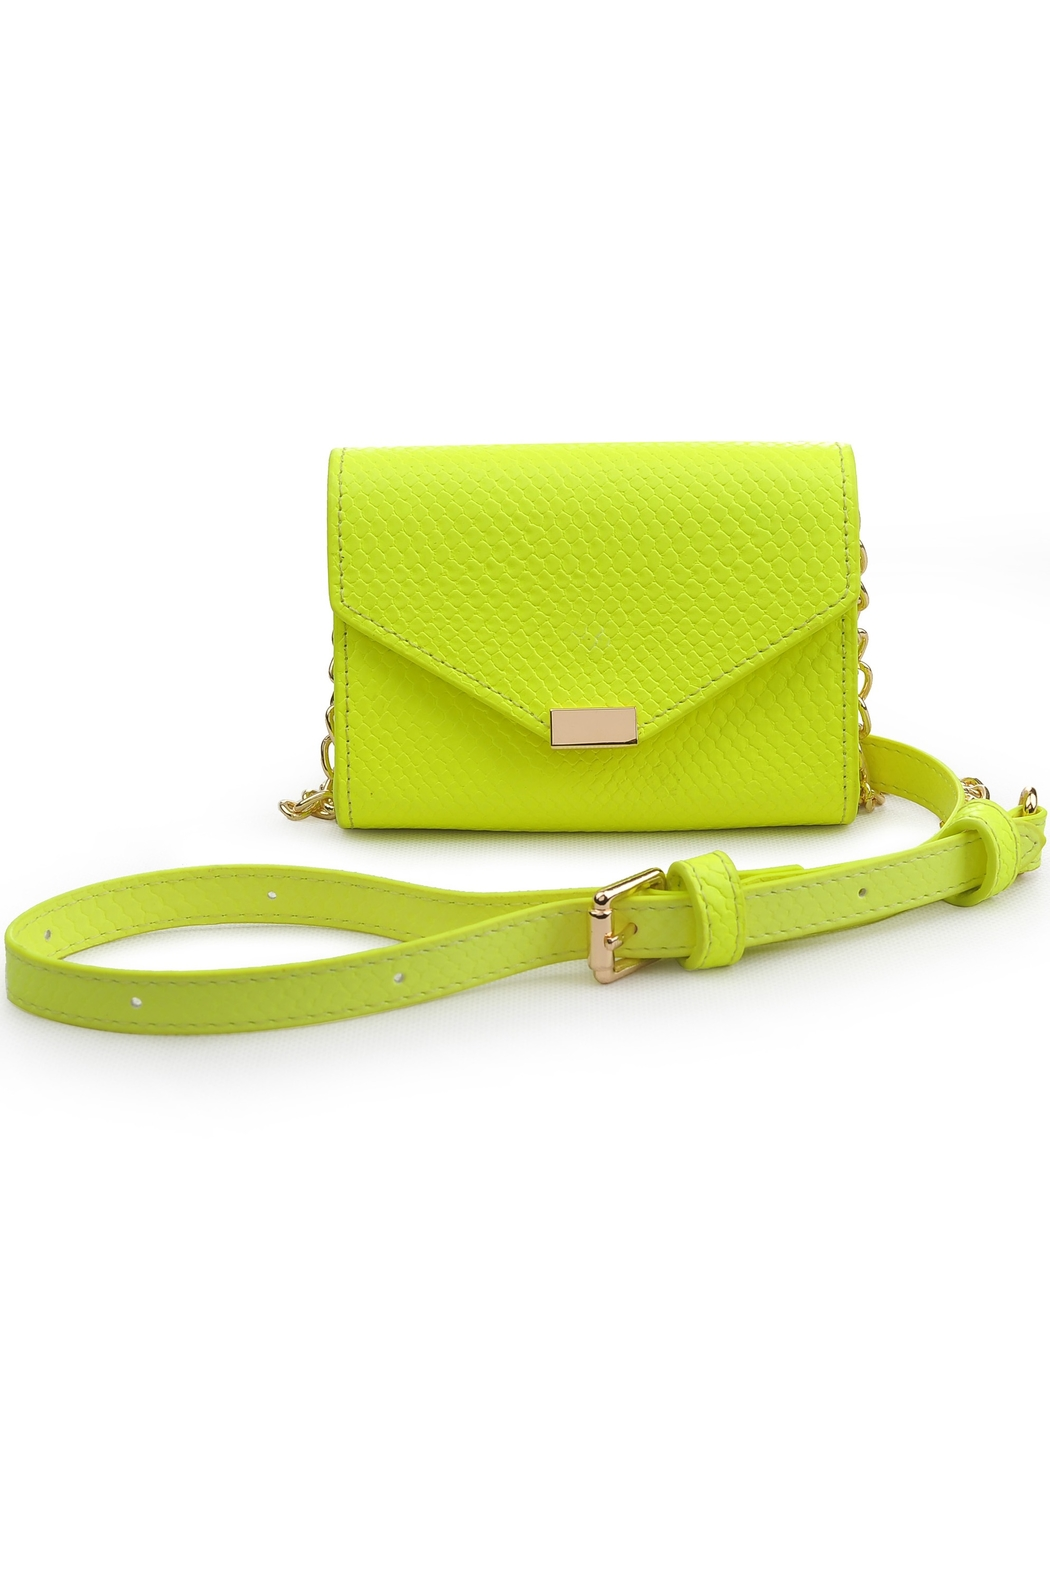 Urban Expressions Jasmine Mini Wallet Crossbody - Front Cropped Image